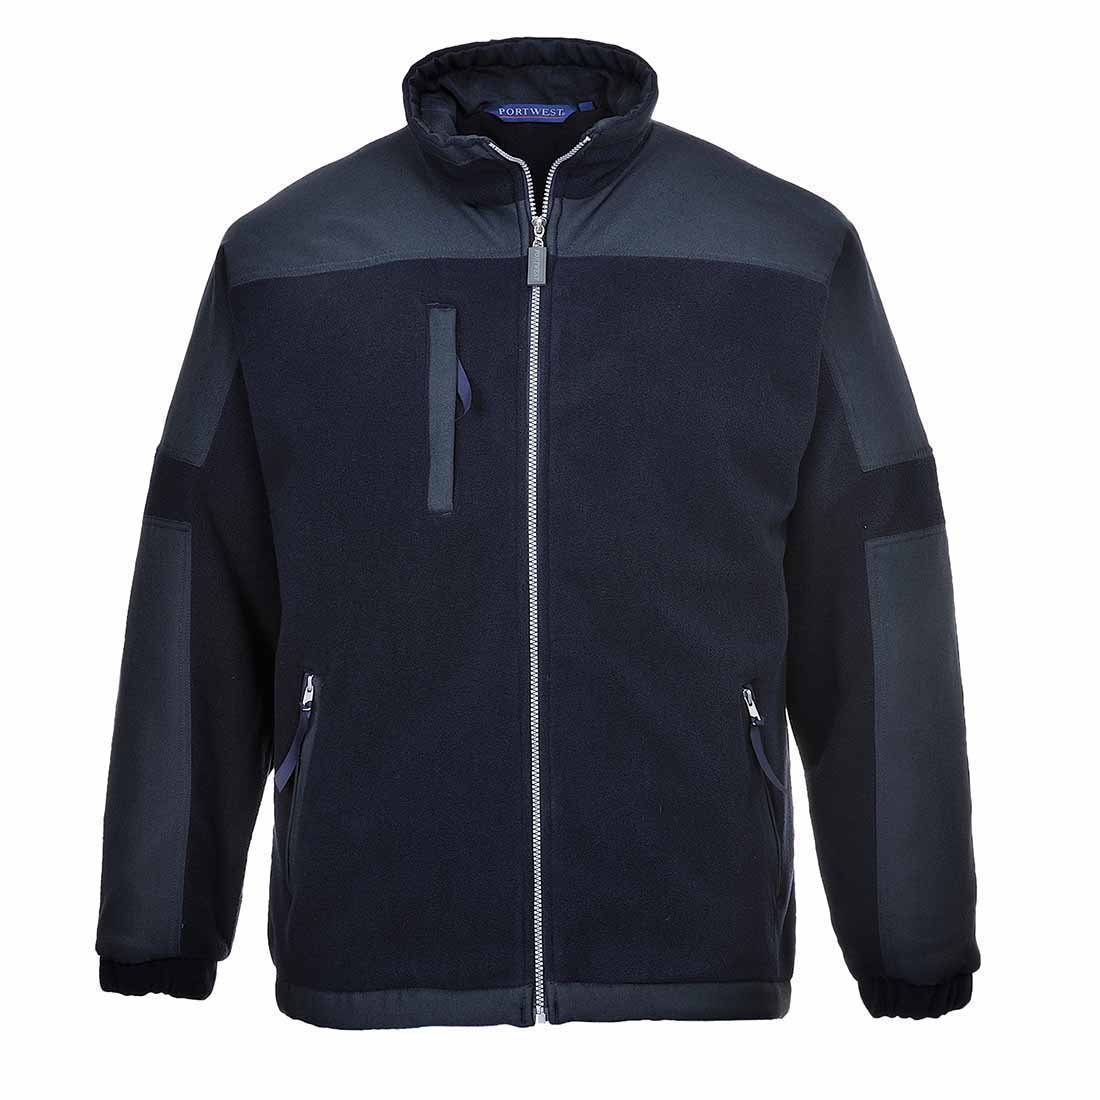 TALLA Medium. Portwest S665 - Mar del Norte Fleece, color Armada, talla Medium